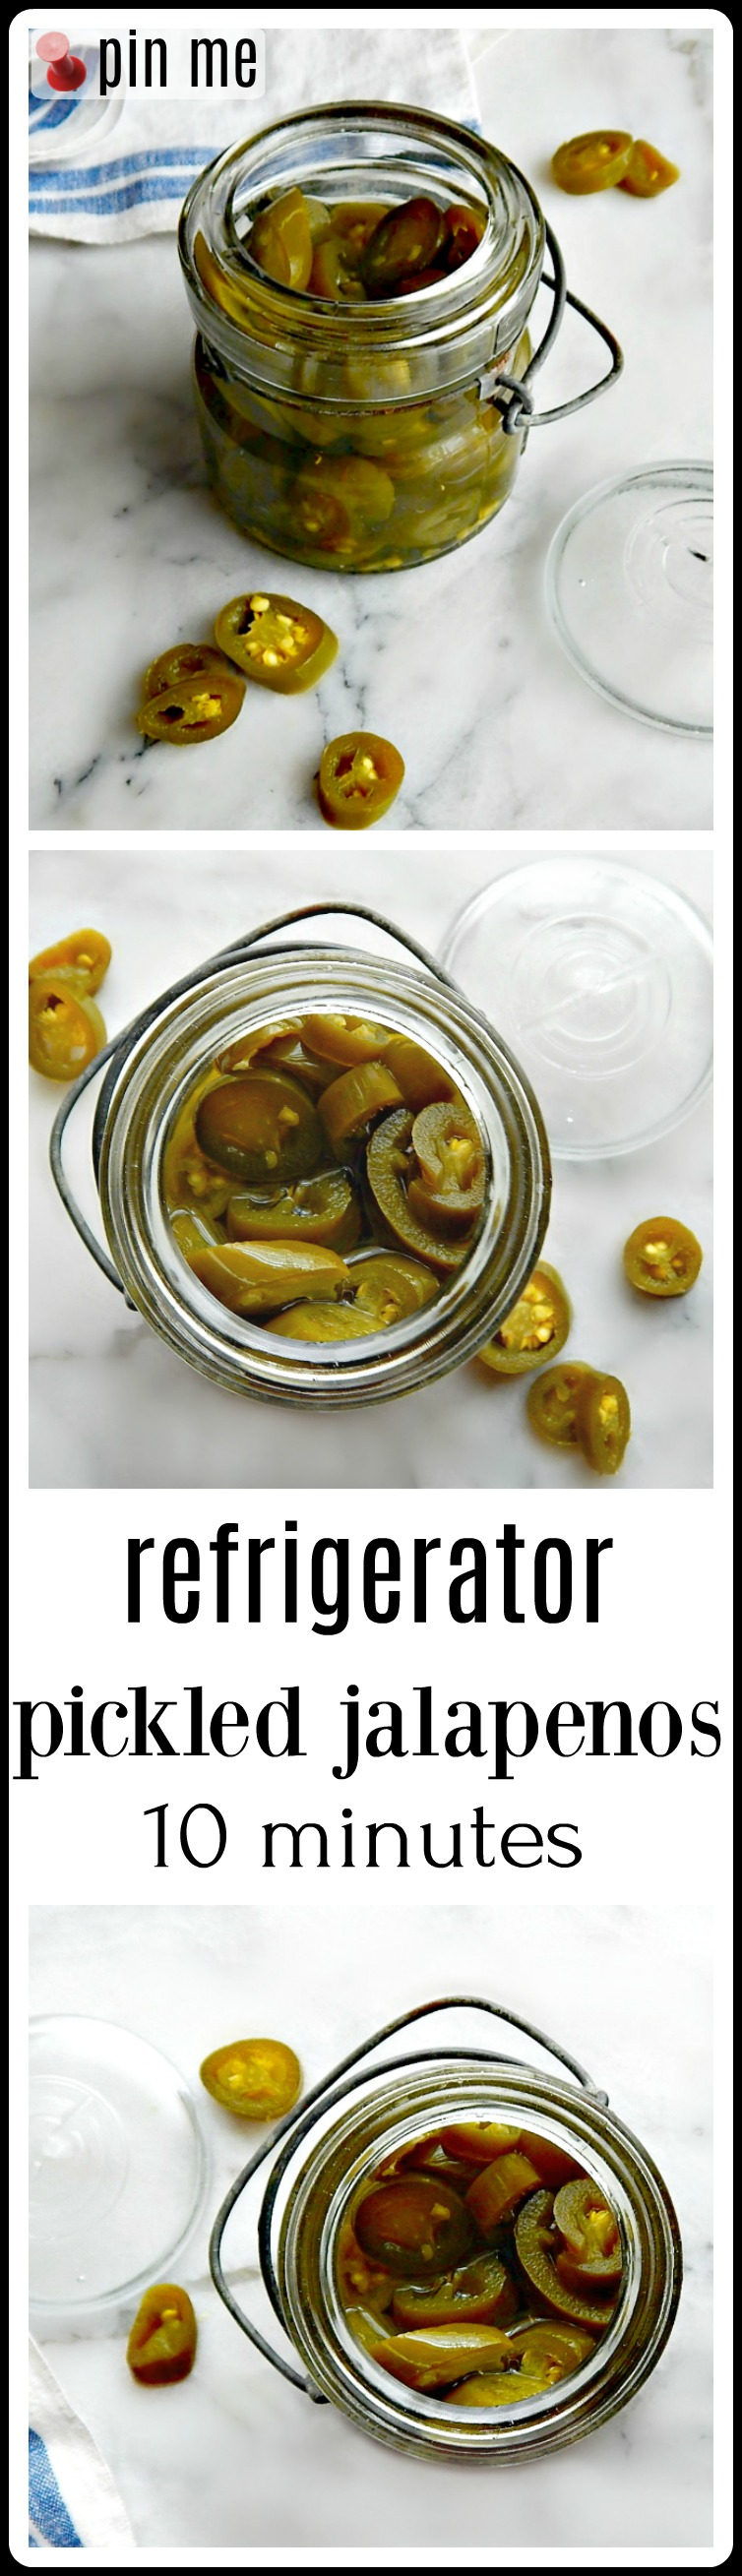 "Refrigerator Pickled Jalapenos: Do yanno what's a great little thing to have on hand? Just to perk up a little Mexican food. Maybe toss on some tacos? Refrigerator Pickled Jalapenos. They're like 10 minutes to make and once you try them, you'll have that ""doi"" moment when you think about all the pricey jars you've bought!"